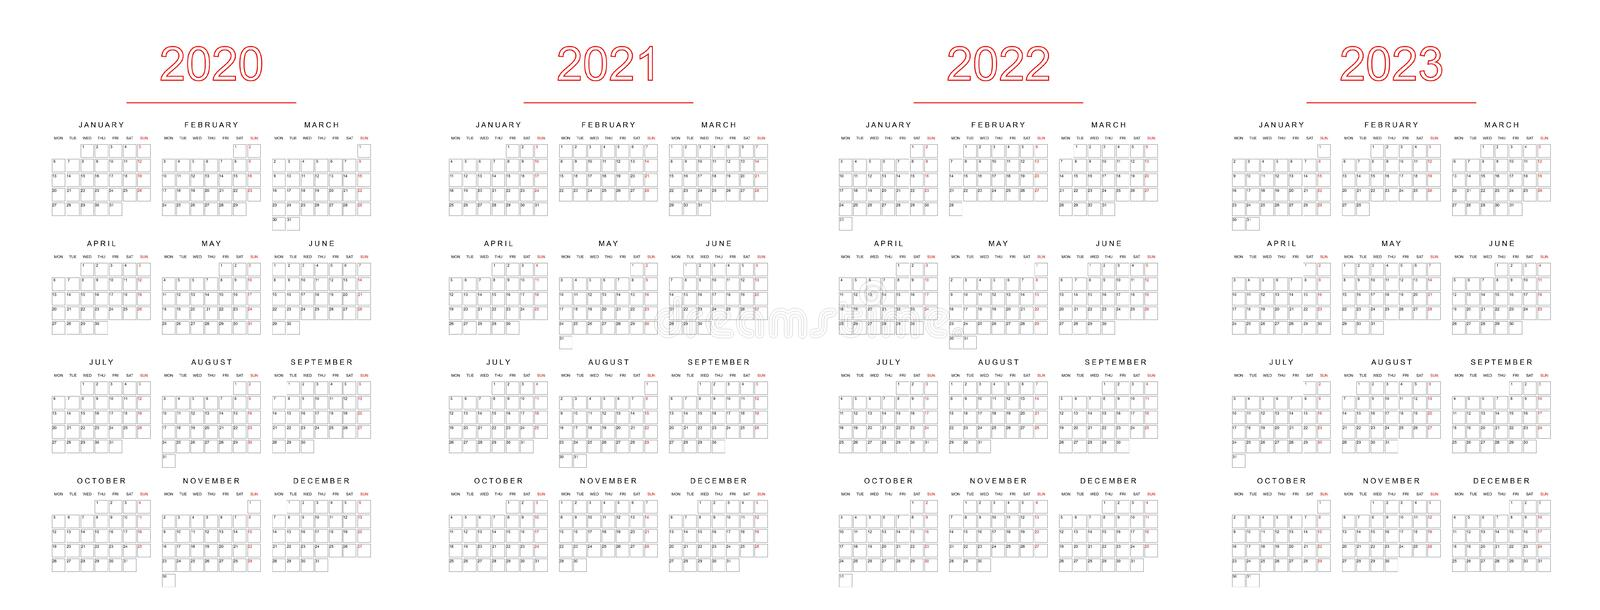 Calendar vector illustration of year 2020, 2021, 2022 and 2023, simple format with space for notes royalty free illustration